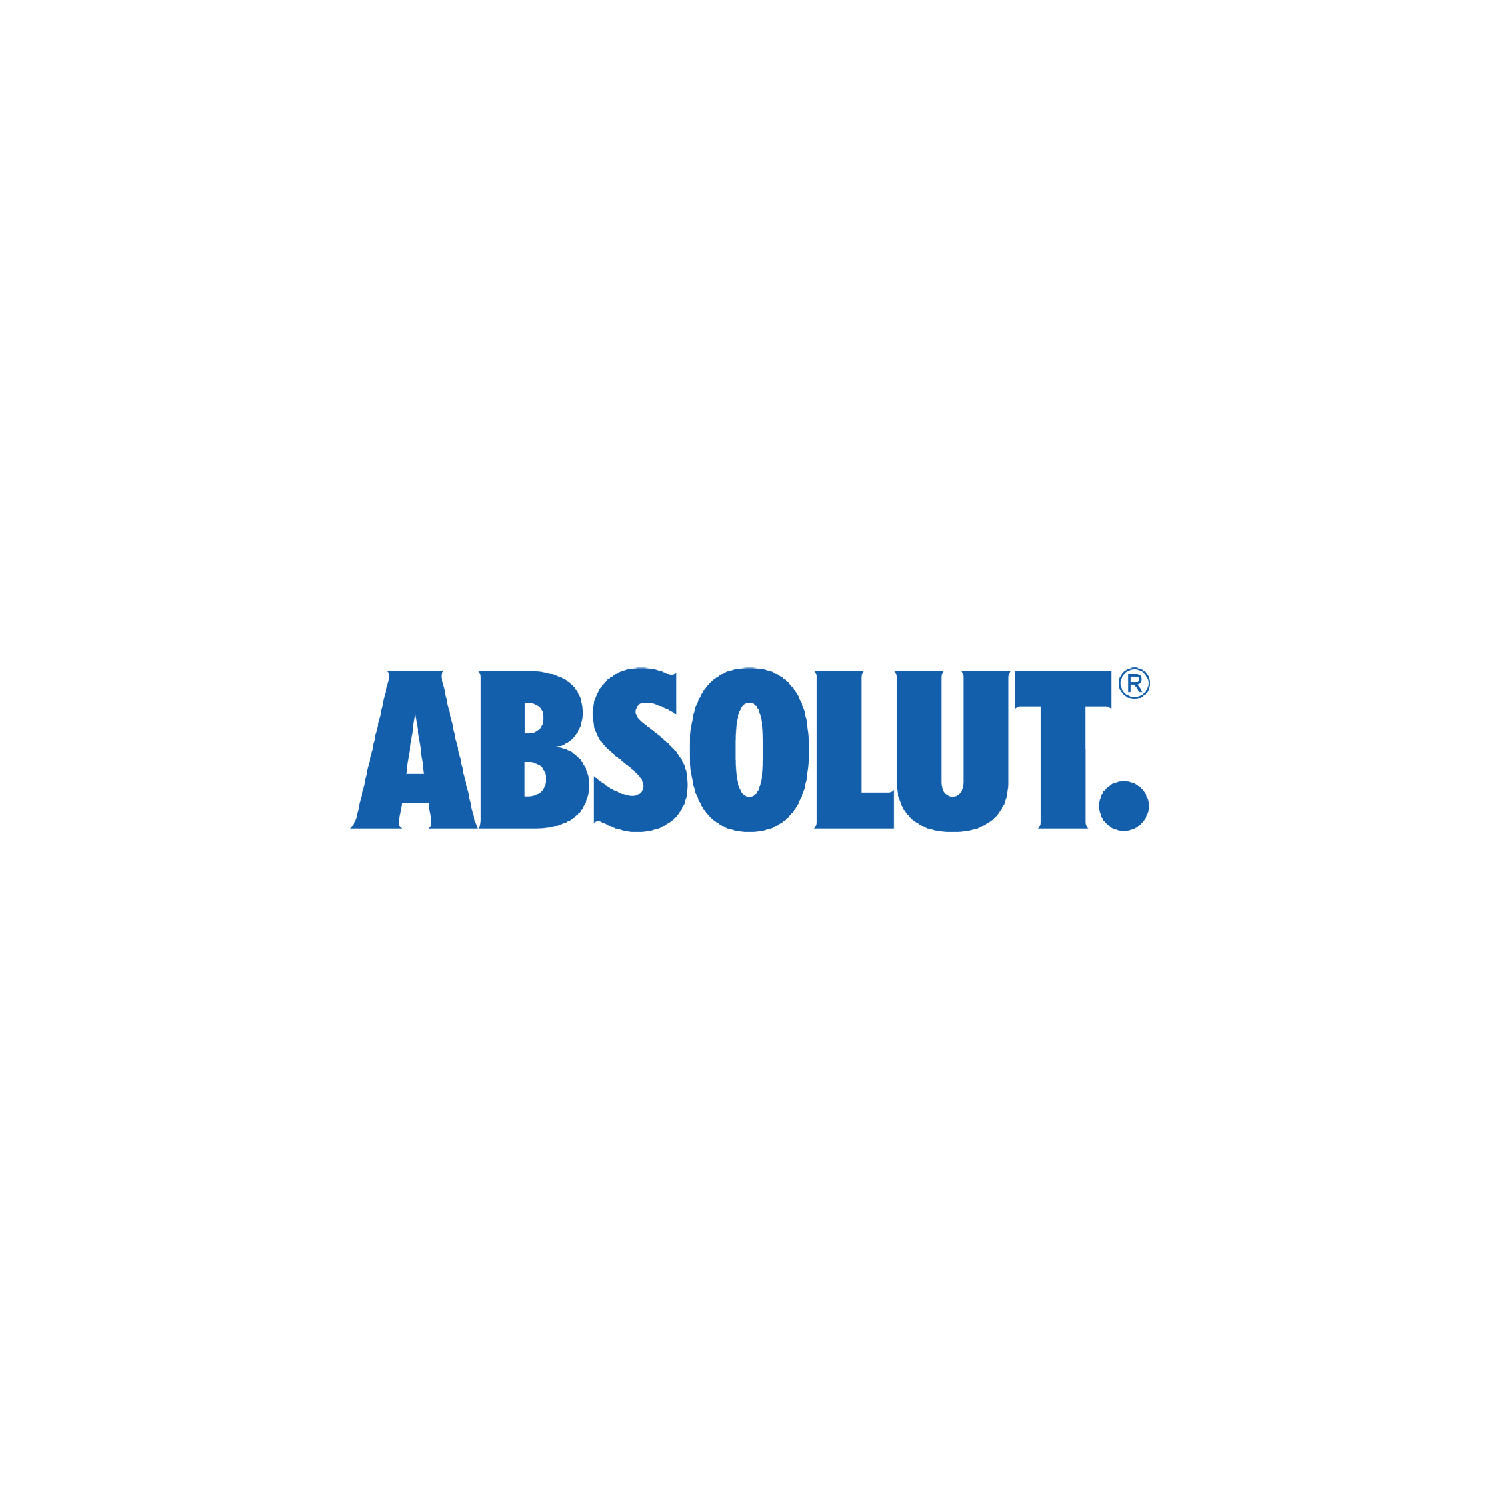 Absolut_1500.png